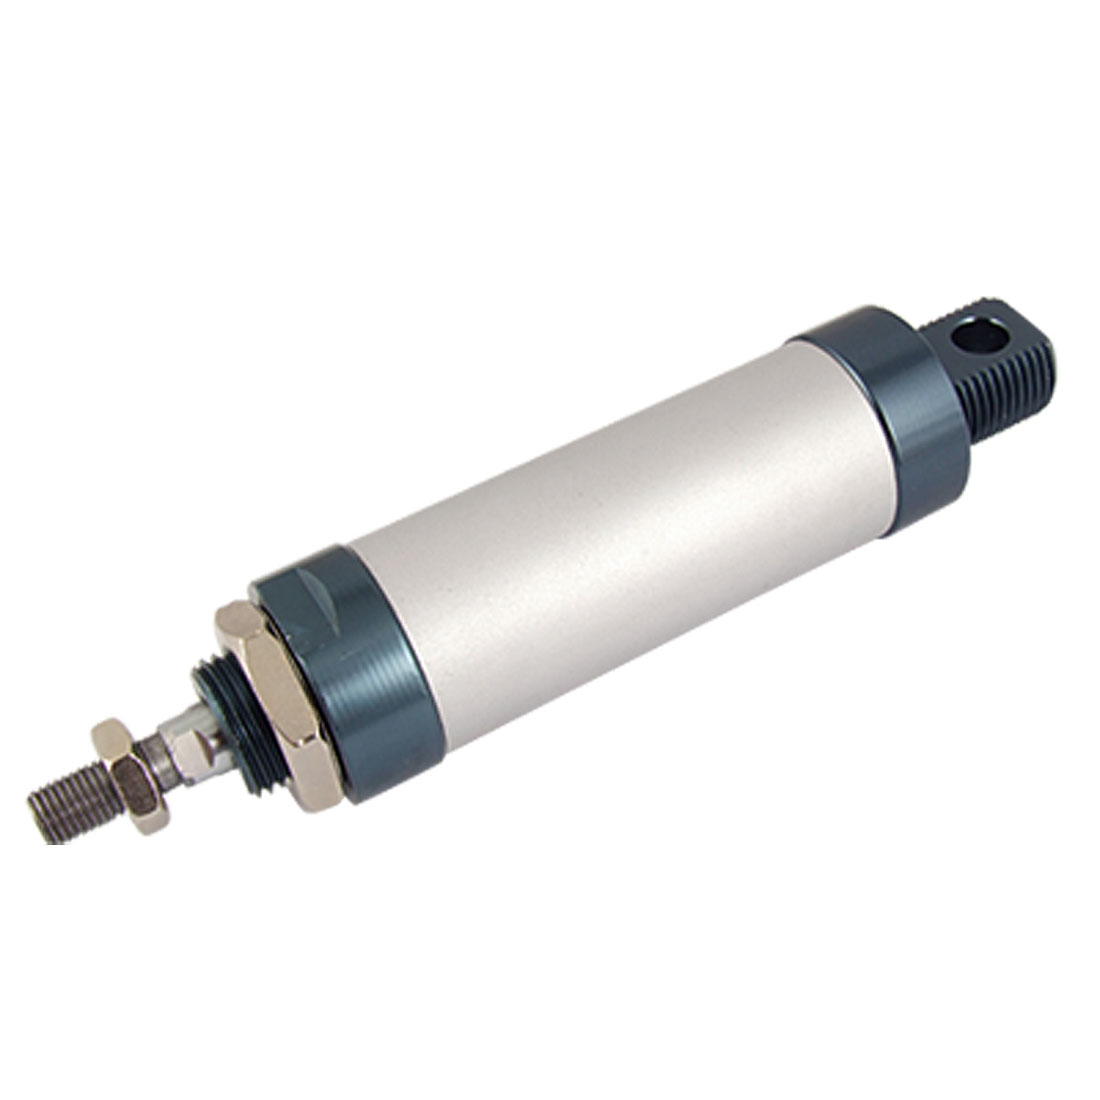 Pneumatic Component MAL Series 32mm Bore 50mm Stroke Air Cylinder